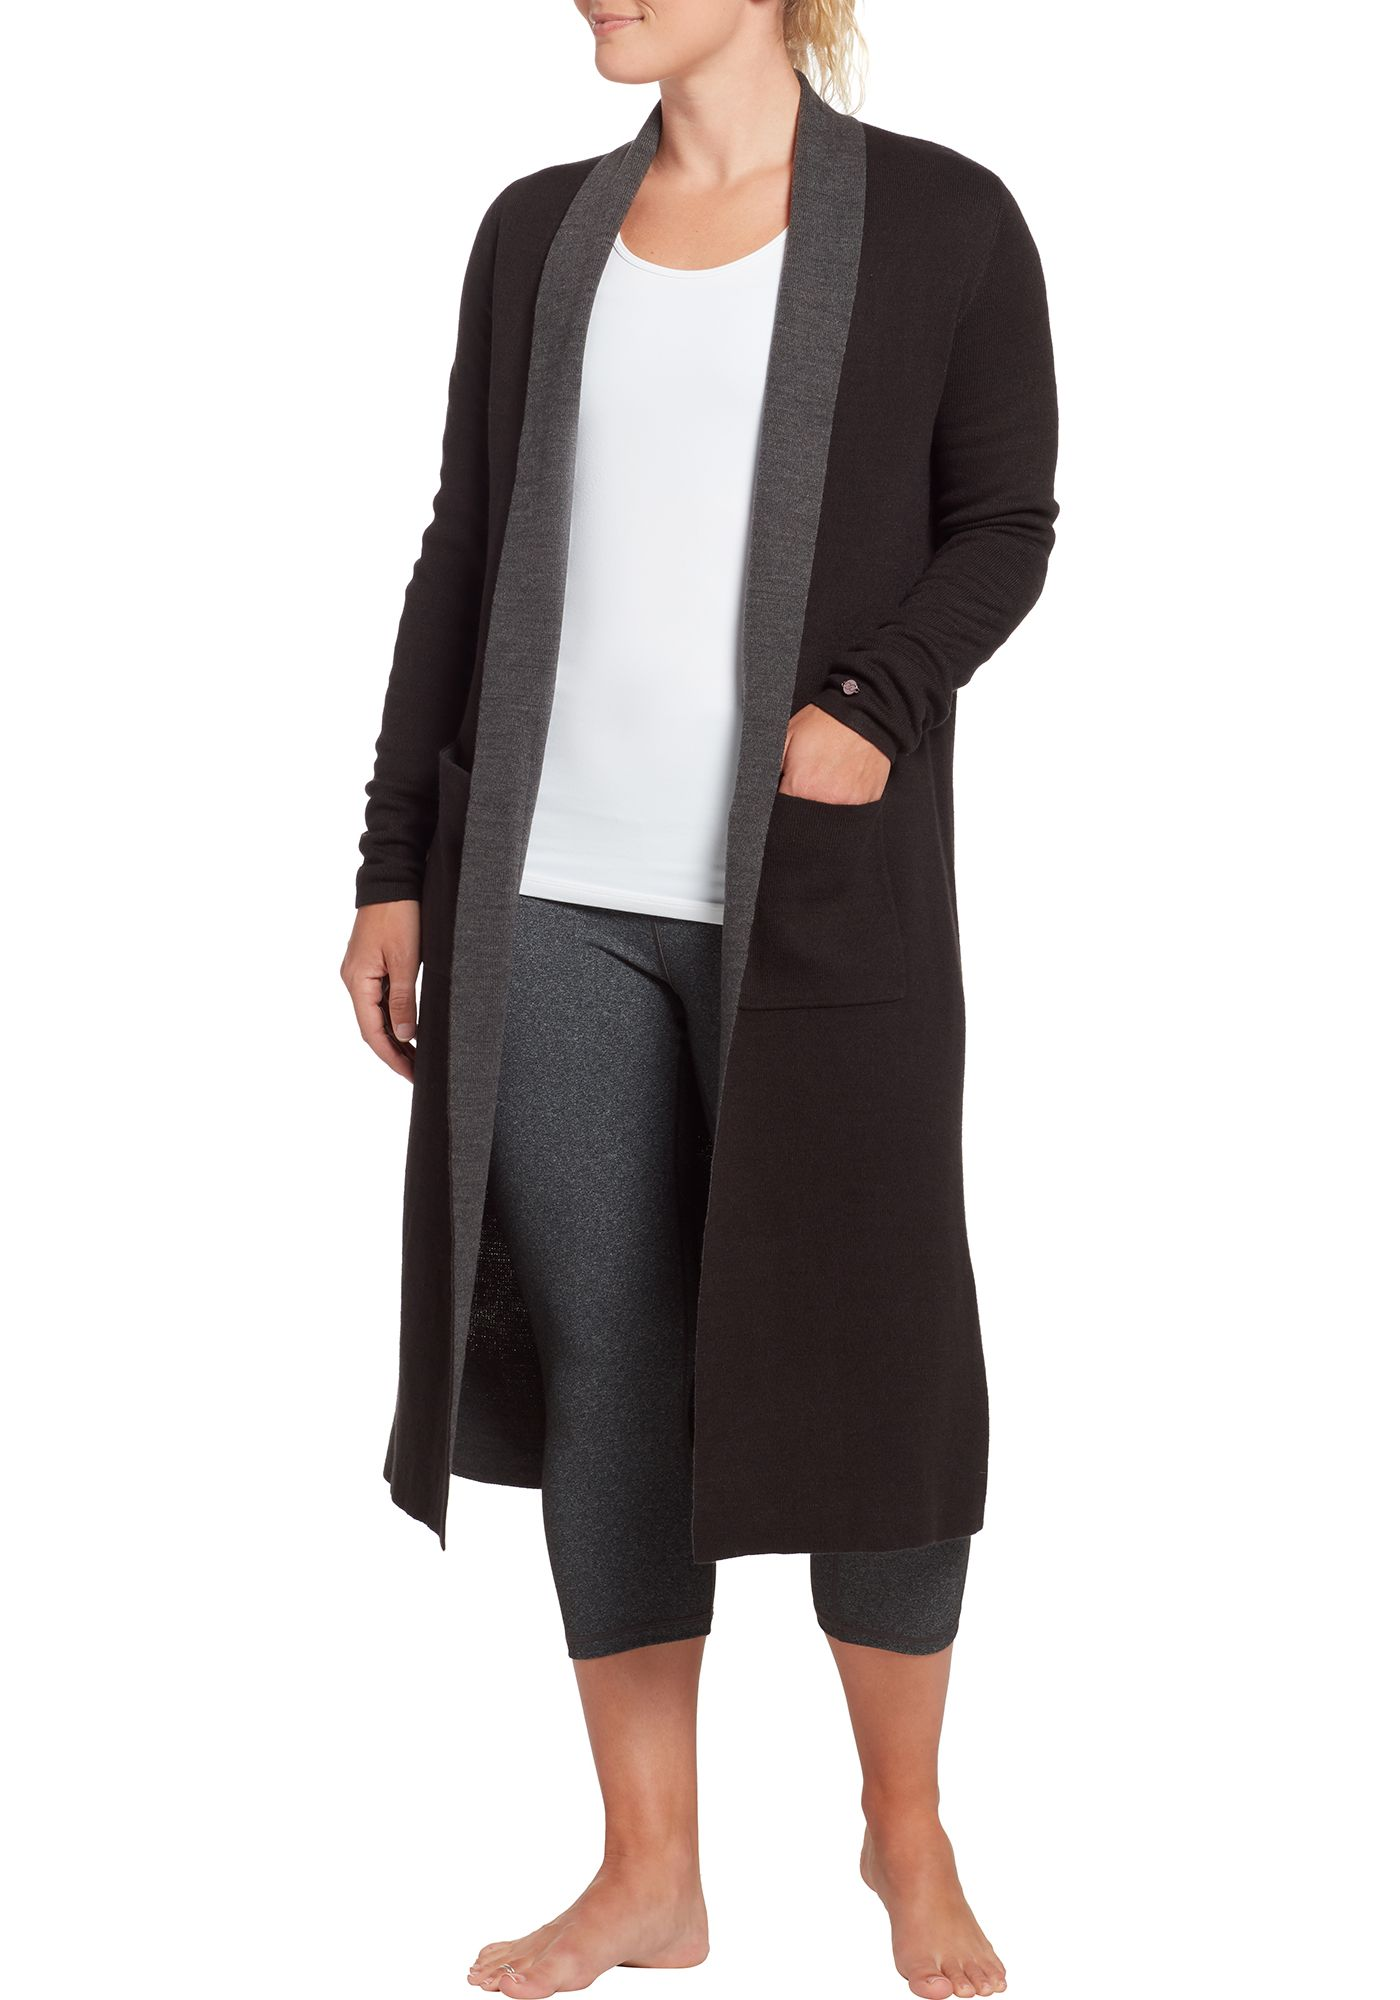 CALIA by Carrie Underwood Women's Journey Duster Cardigan